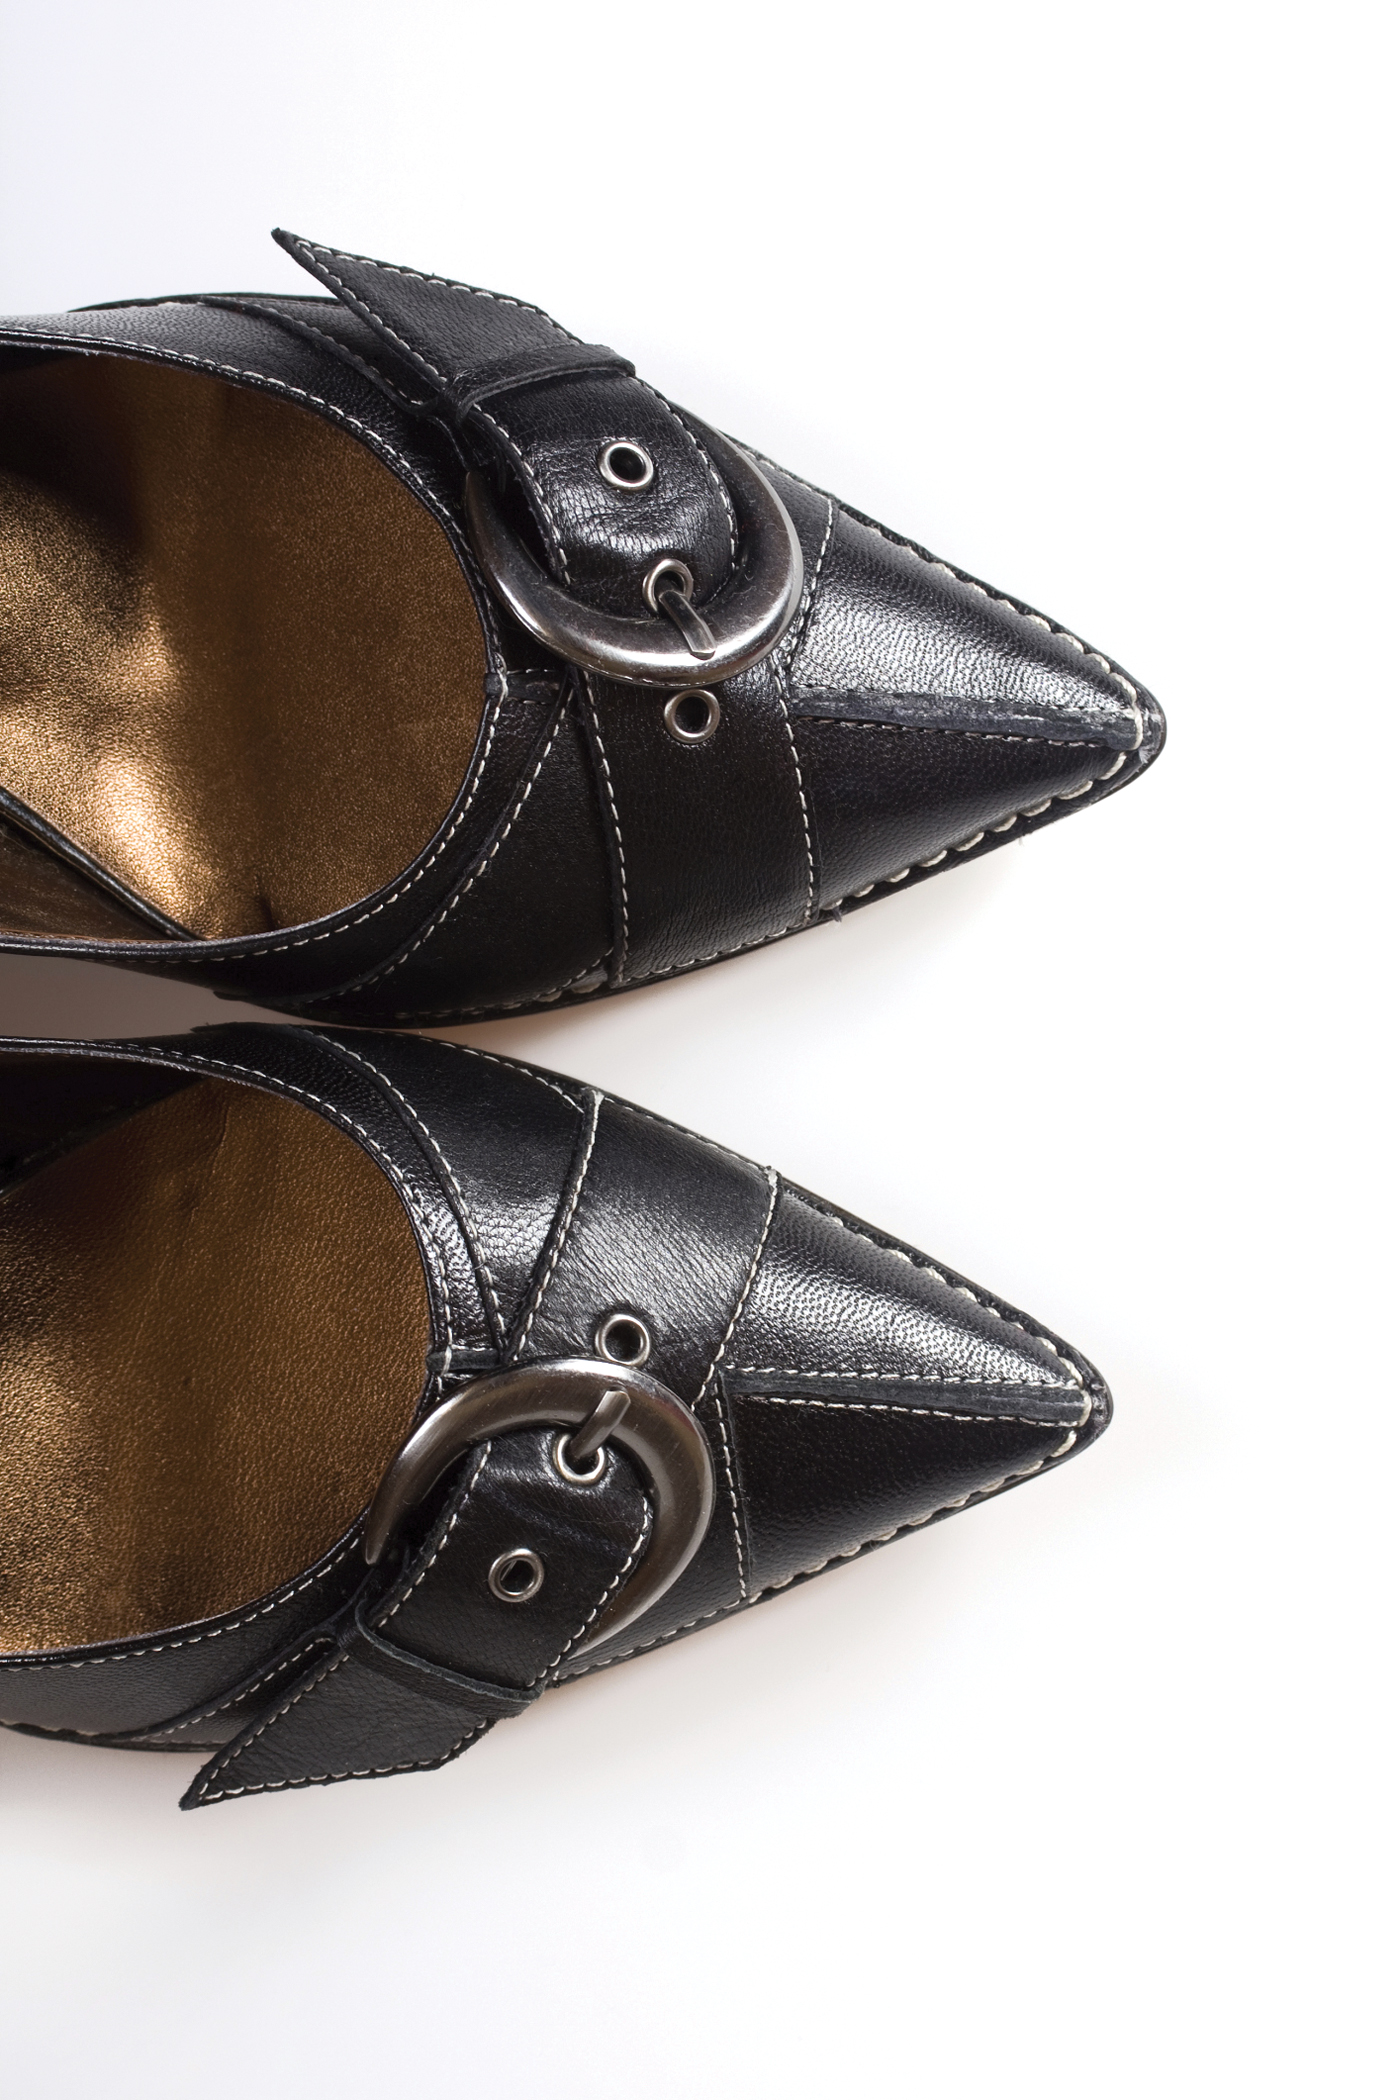 Pointed flats are all the rage this season.